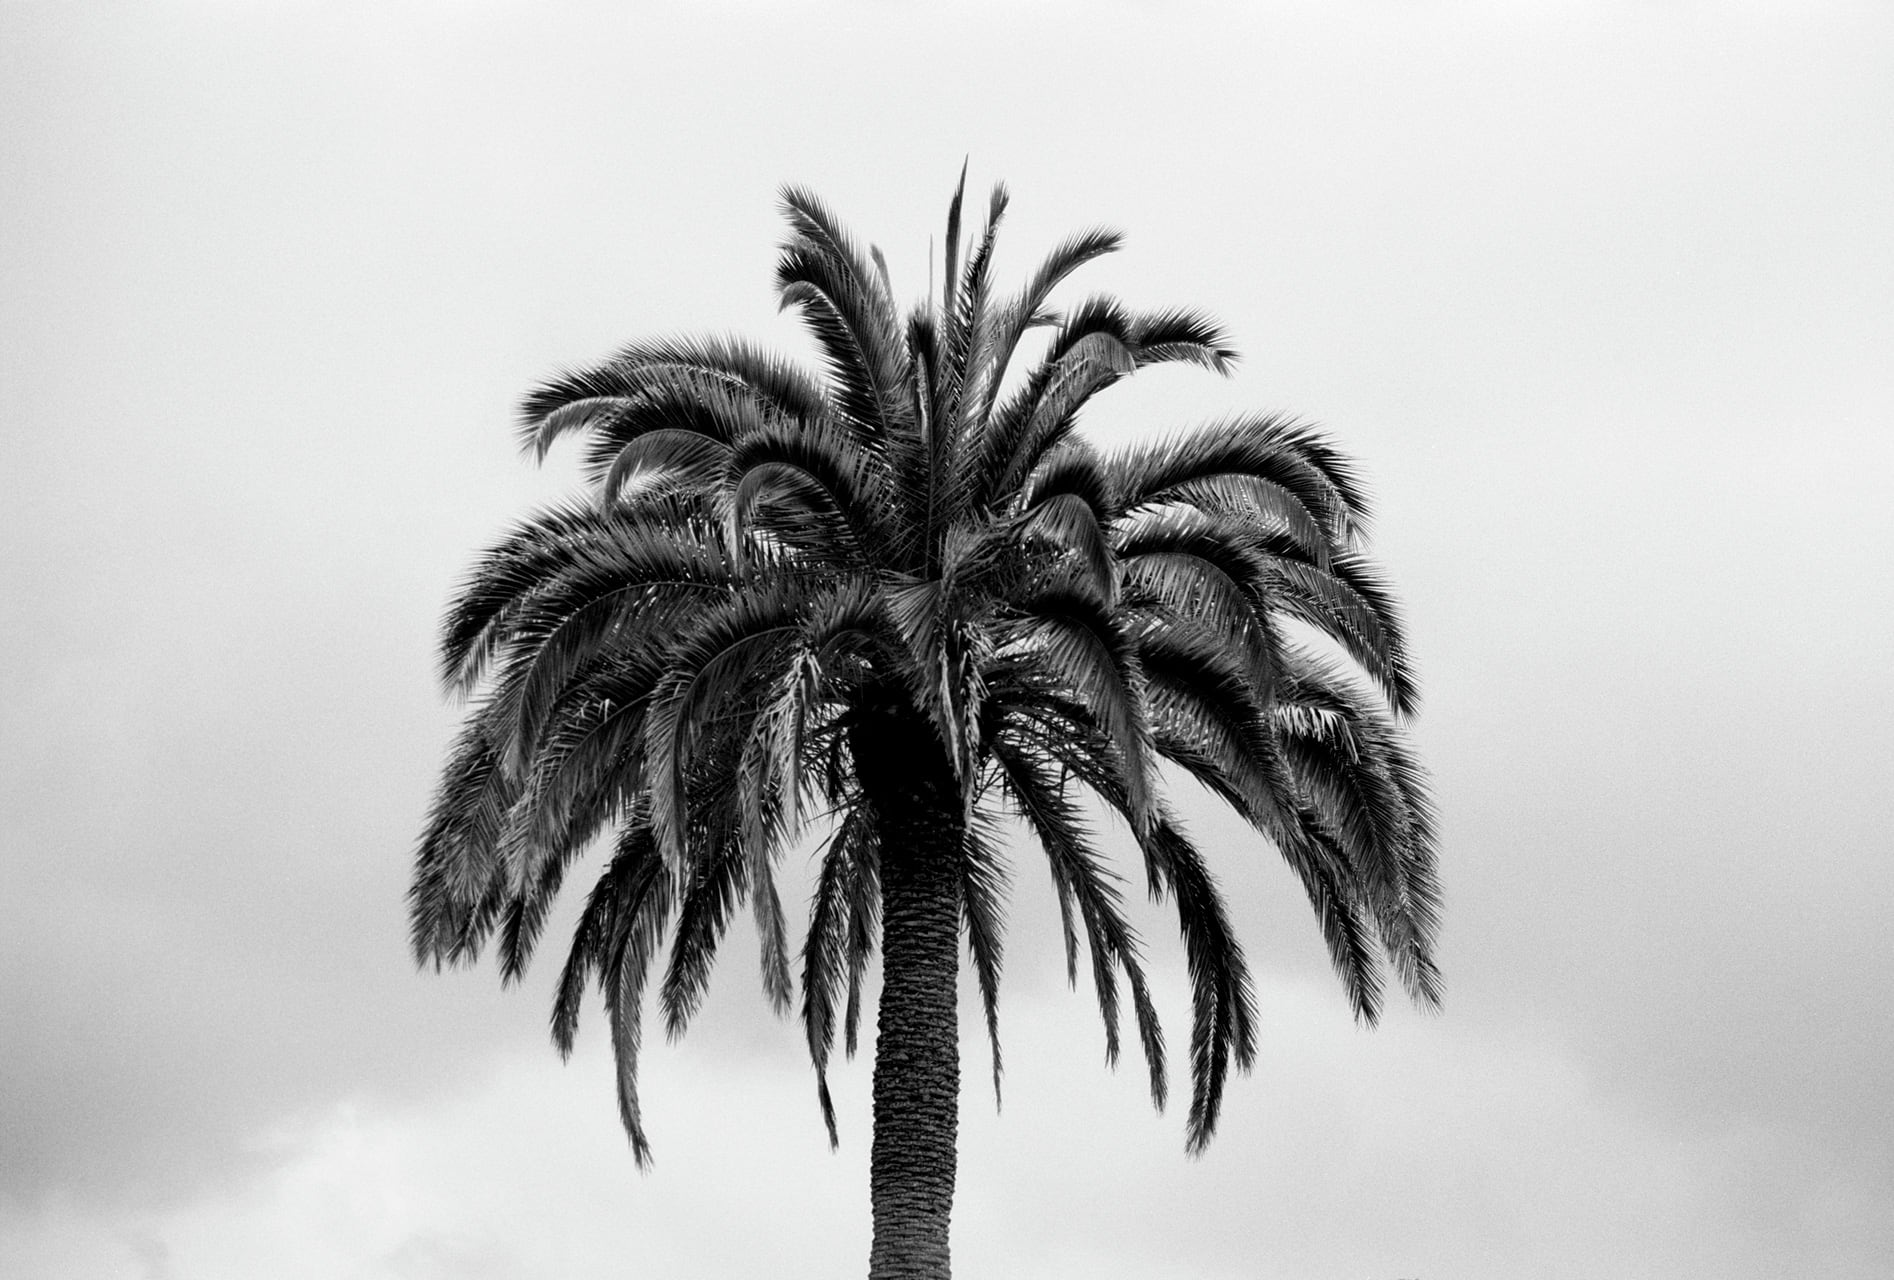 Palm Tree, by Julian Mullan